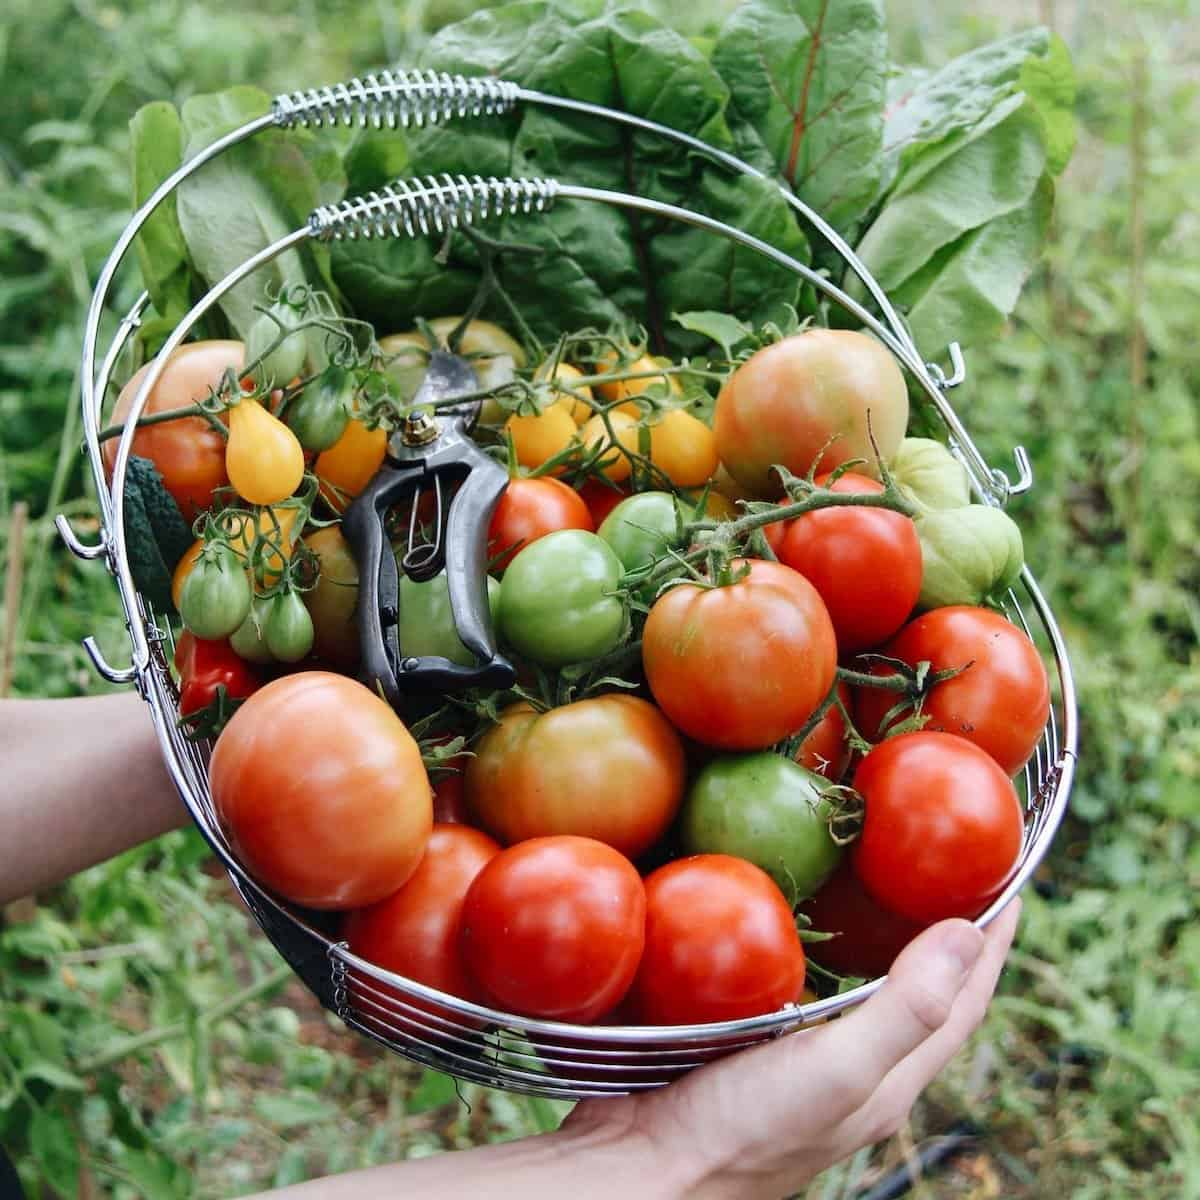 Eat more veggies, and other easy ways to connect with nature by bringing more plants into your life   Home for the Harvest